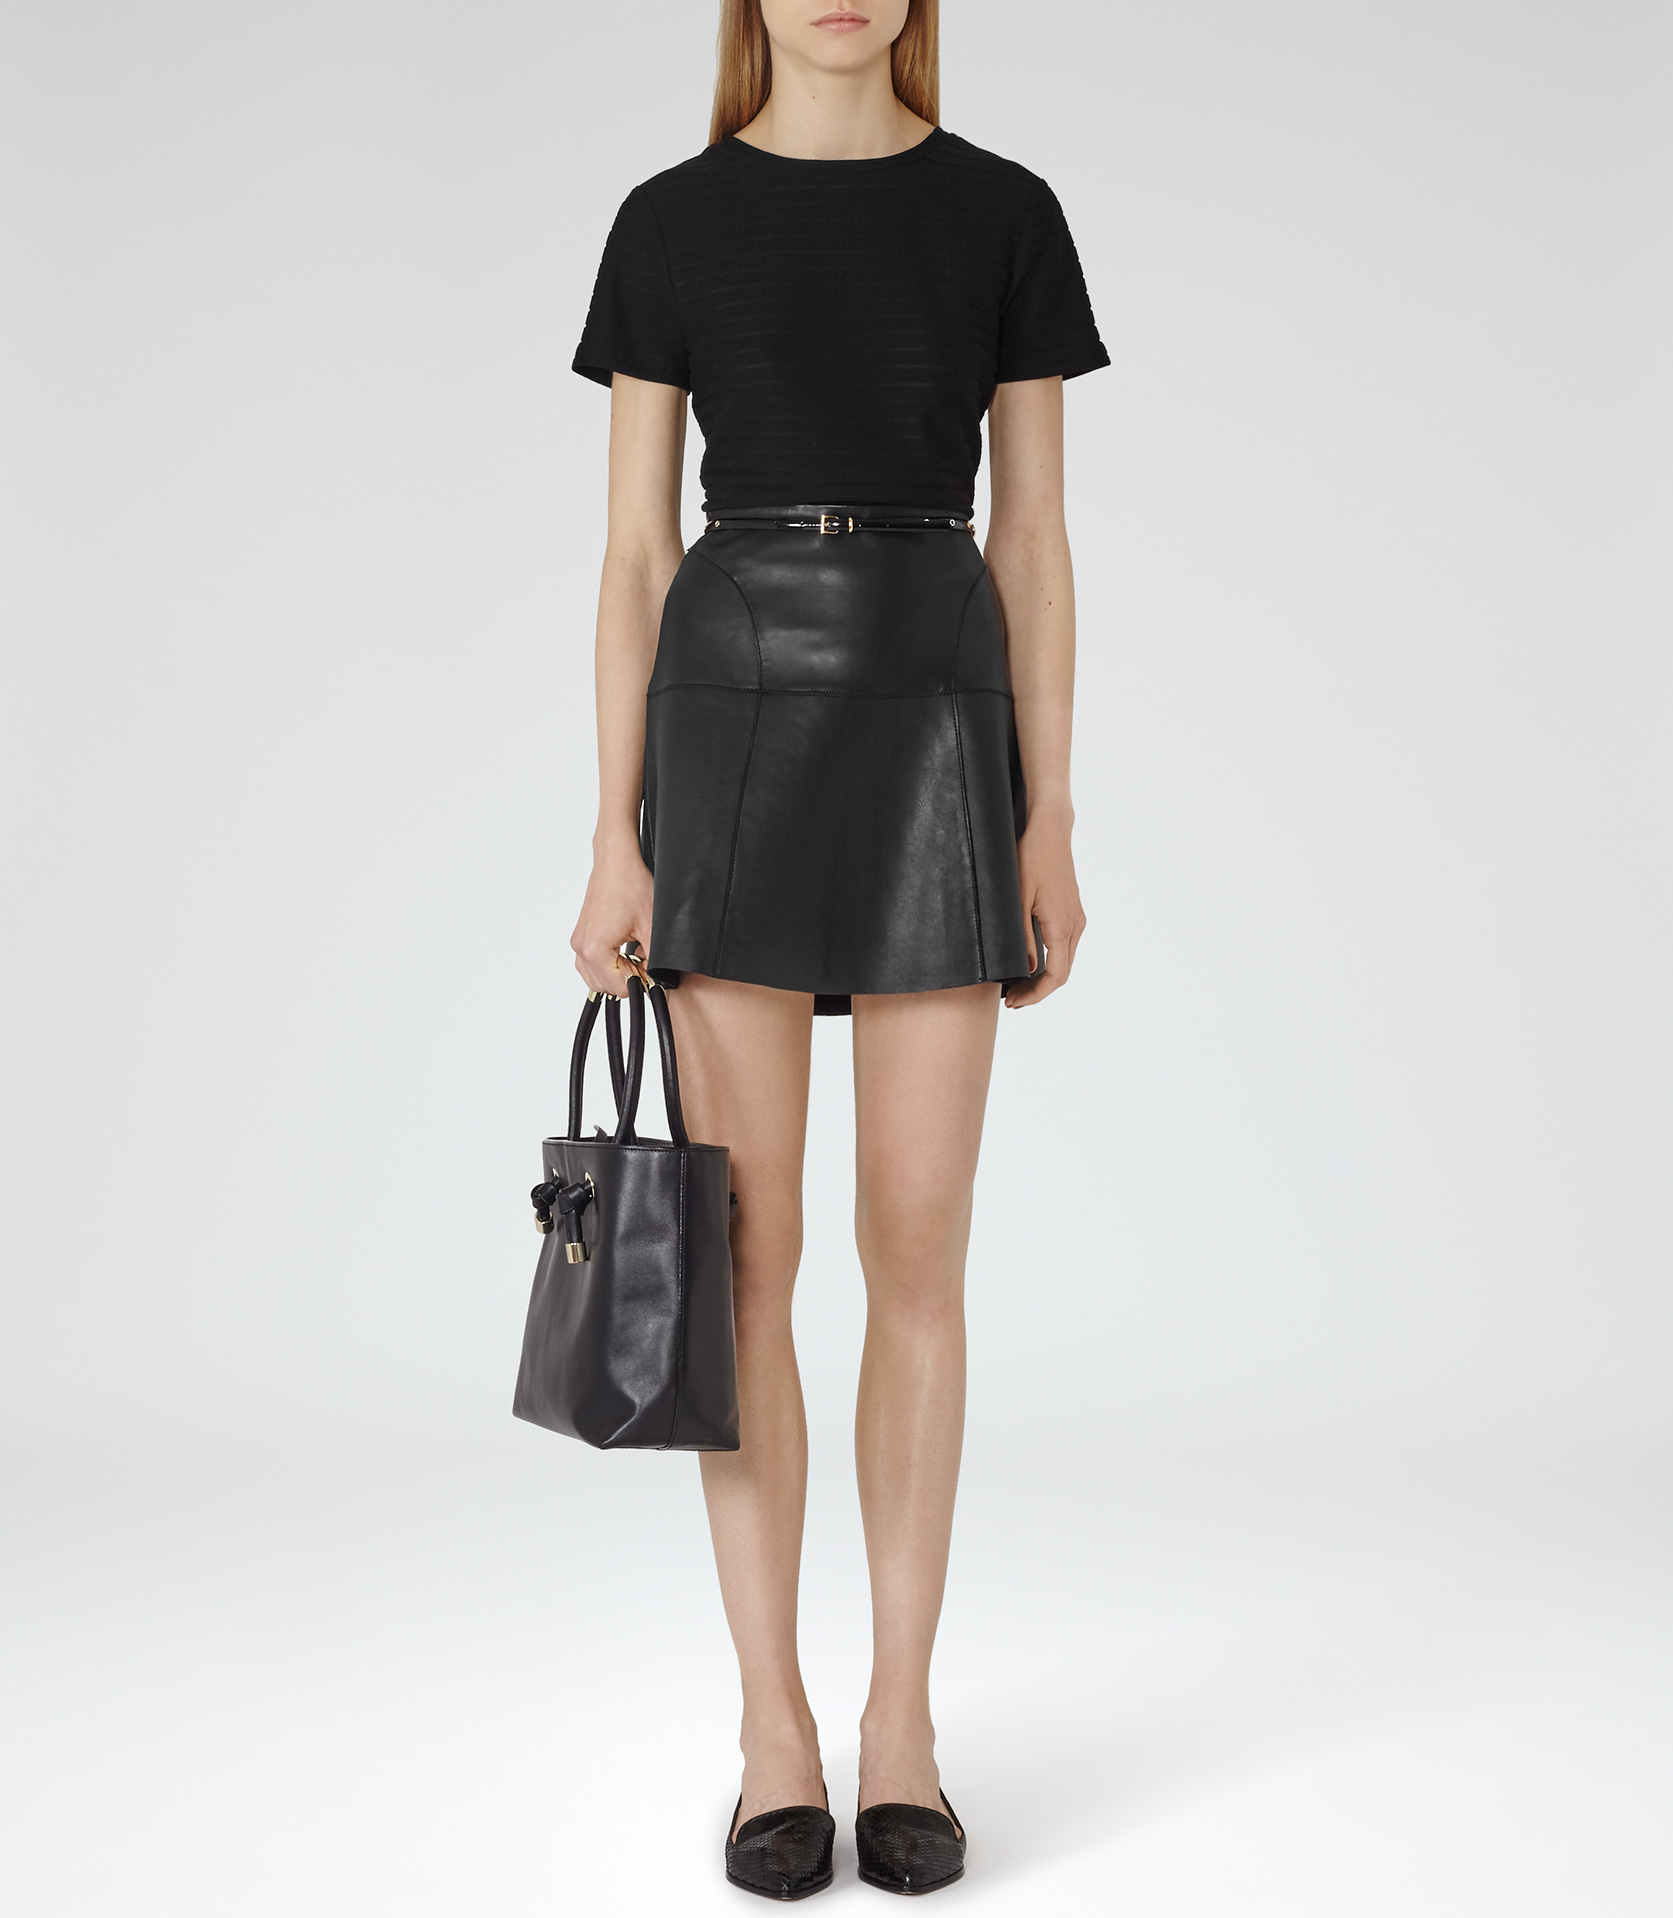 f1c5e8396 ... Boohoo Abi Faux Leather A Line Mini Skirt … Gallery. Women's Leather  Skirts Women's Black Leather Skirts Women's Leather Mini Skirts